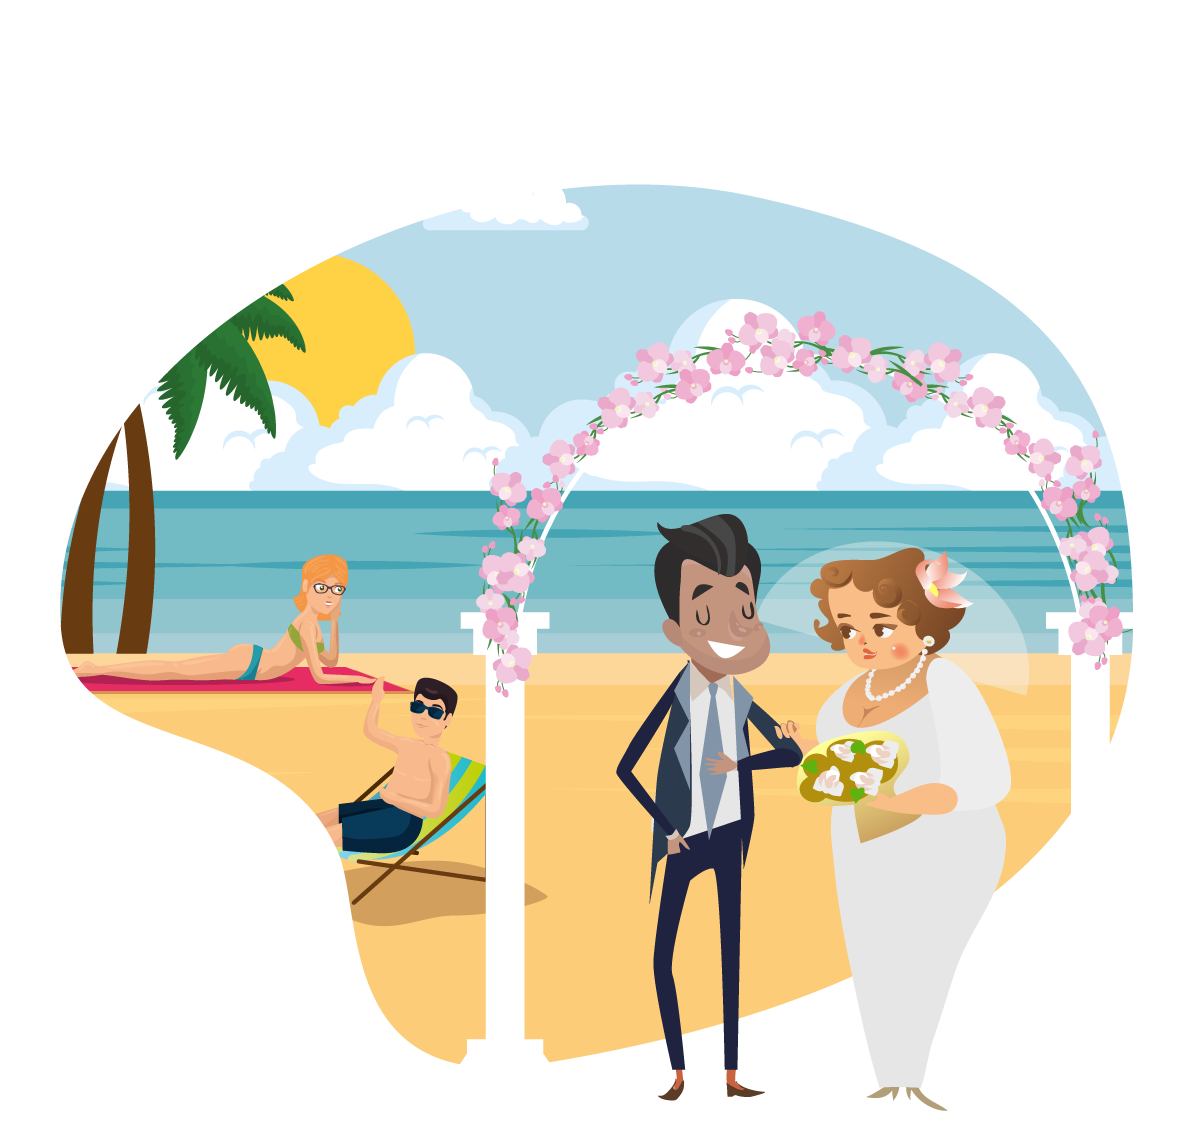 Passport clipart destination wedding. How to avoid disasters